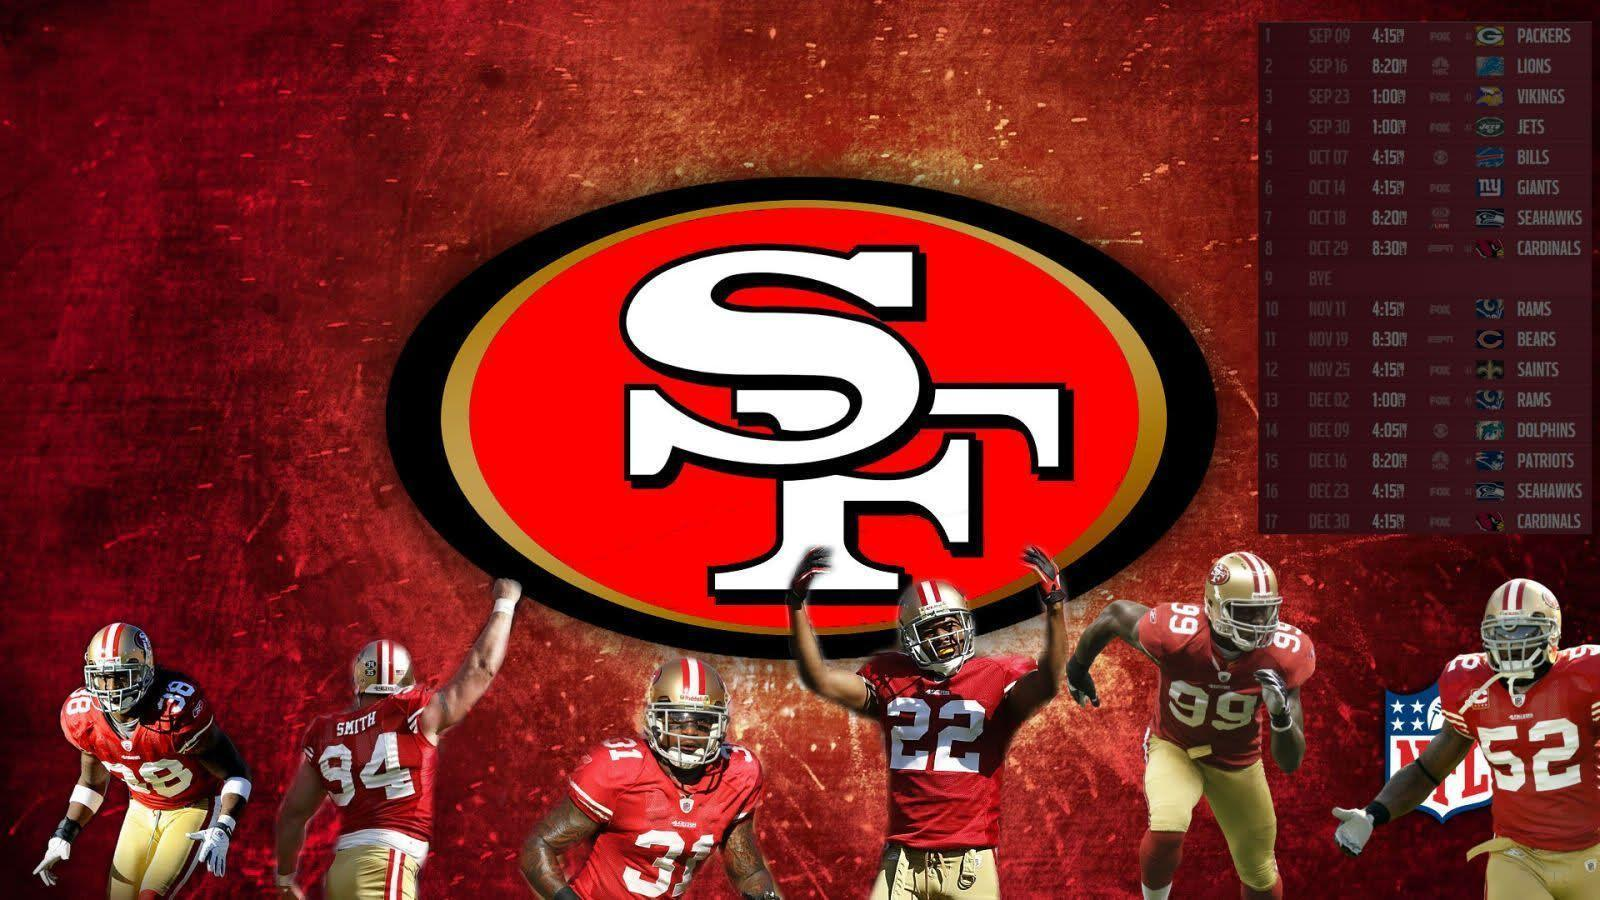 49ers Wallpaper 2015 - WallpaperSafari